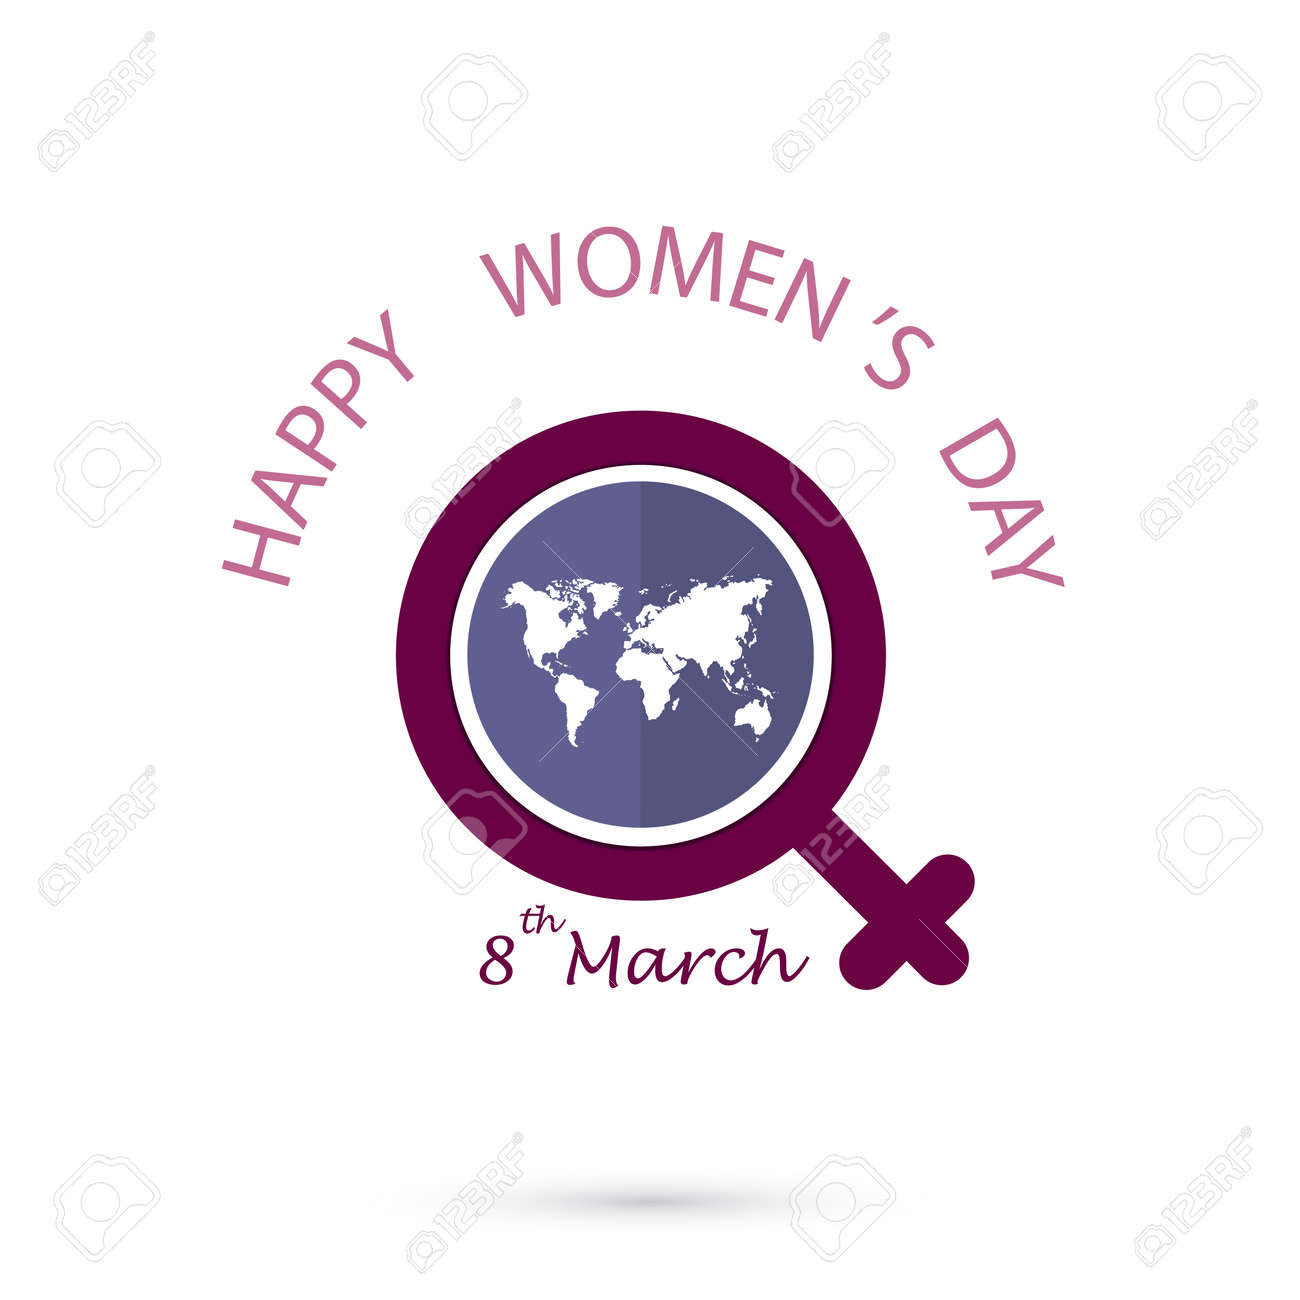 Creative 8 March Logo Vector Design With International Womens